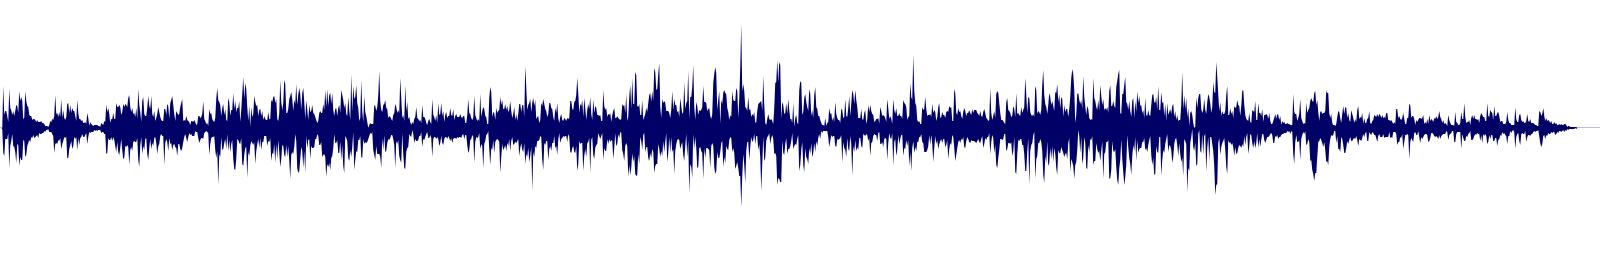 waveform of track #96667